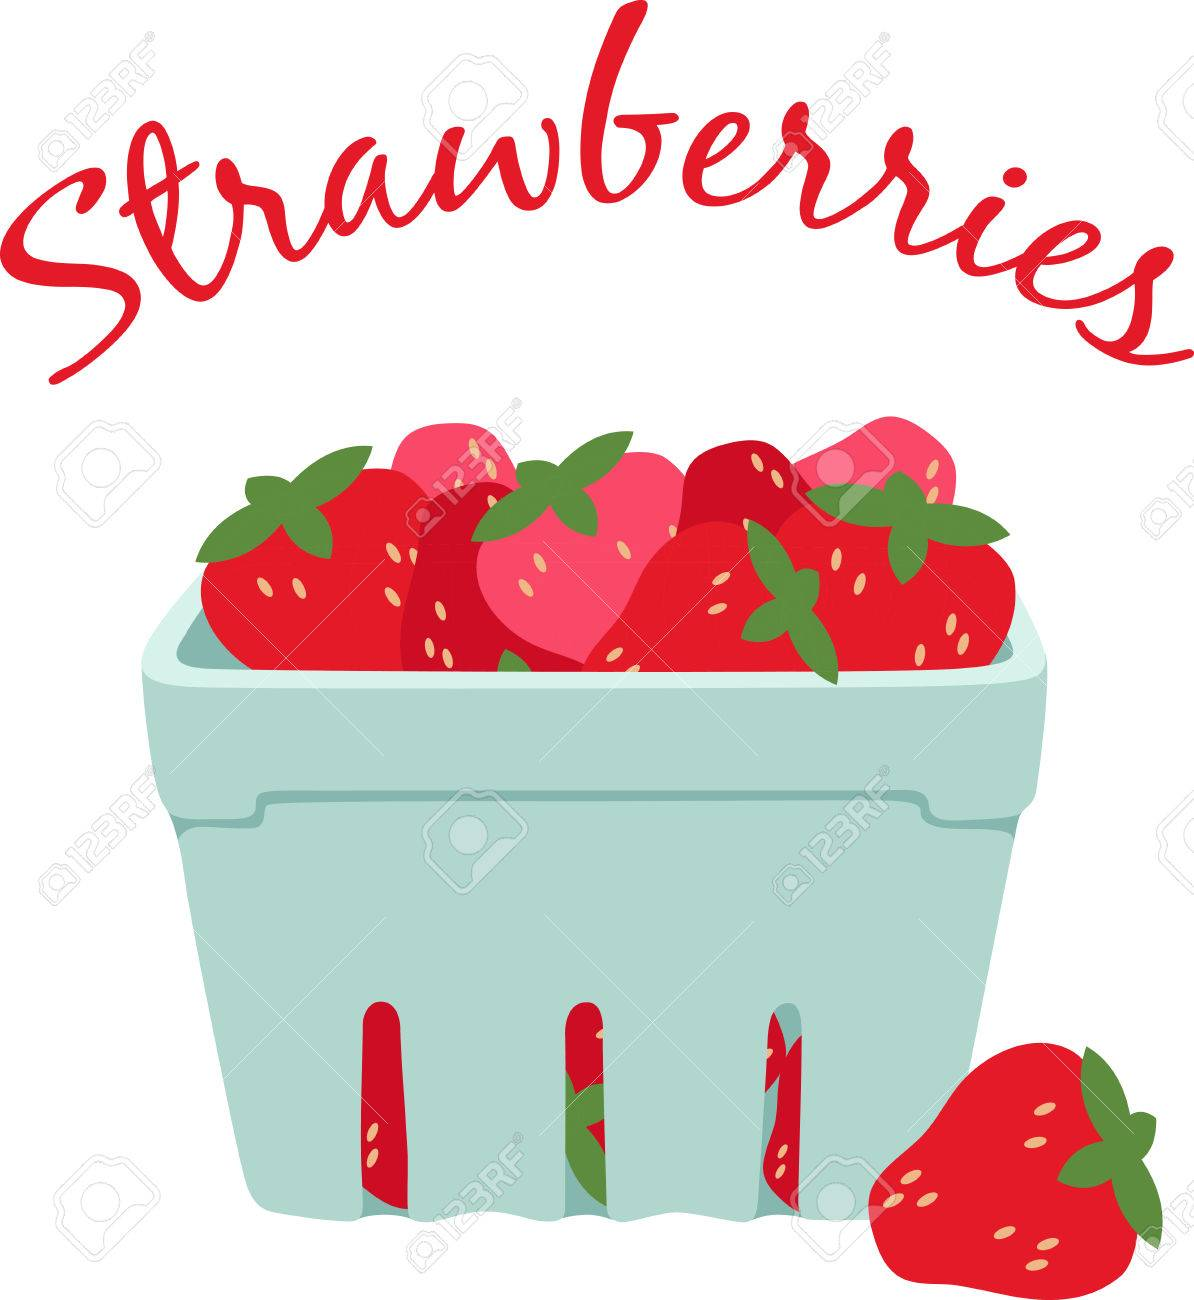 Enjoy Ripe Strawberries Vector - Little screams summer quite like the sweet scent and ripe taste of fresh, plump strawberries. Enjoy the harvest with this design on place mats and ...